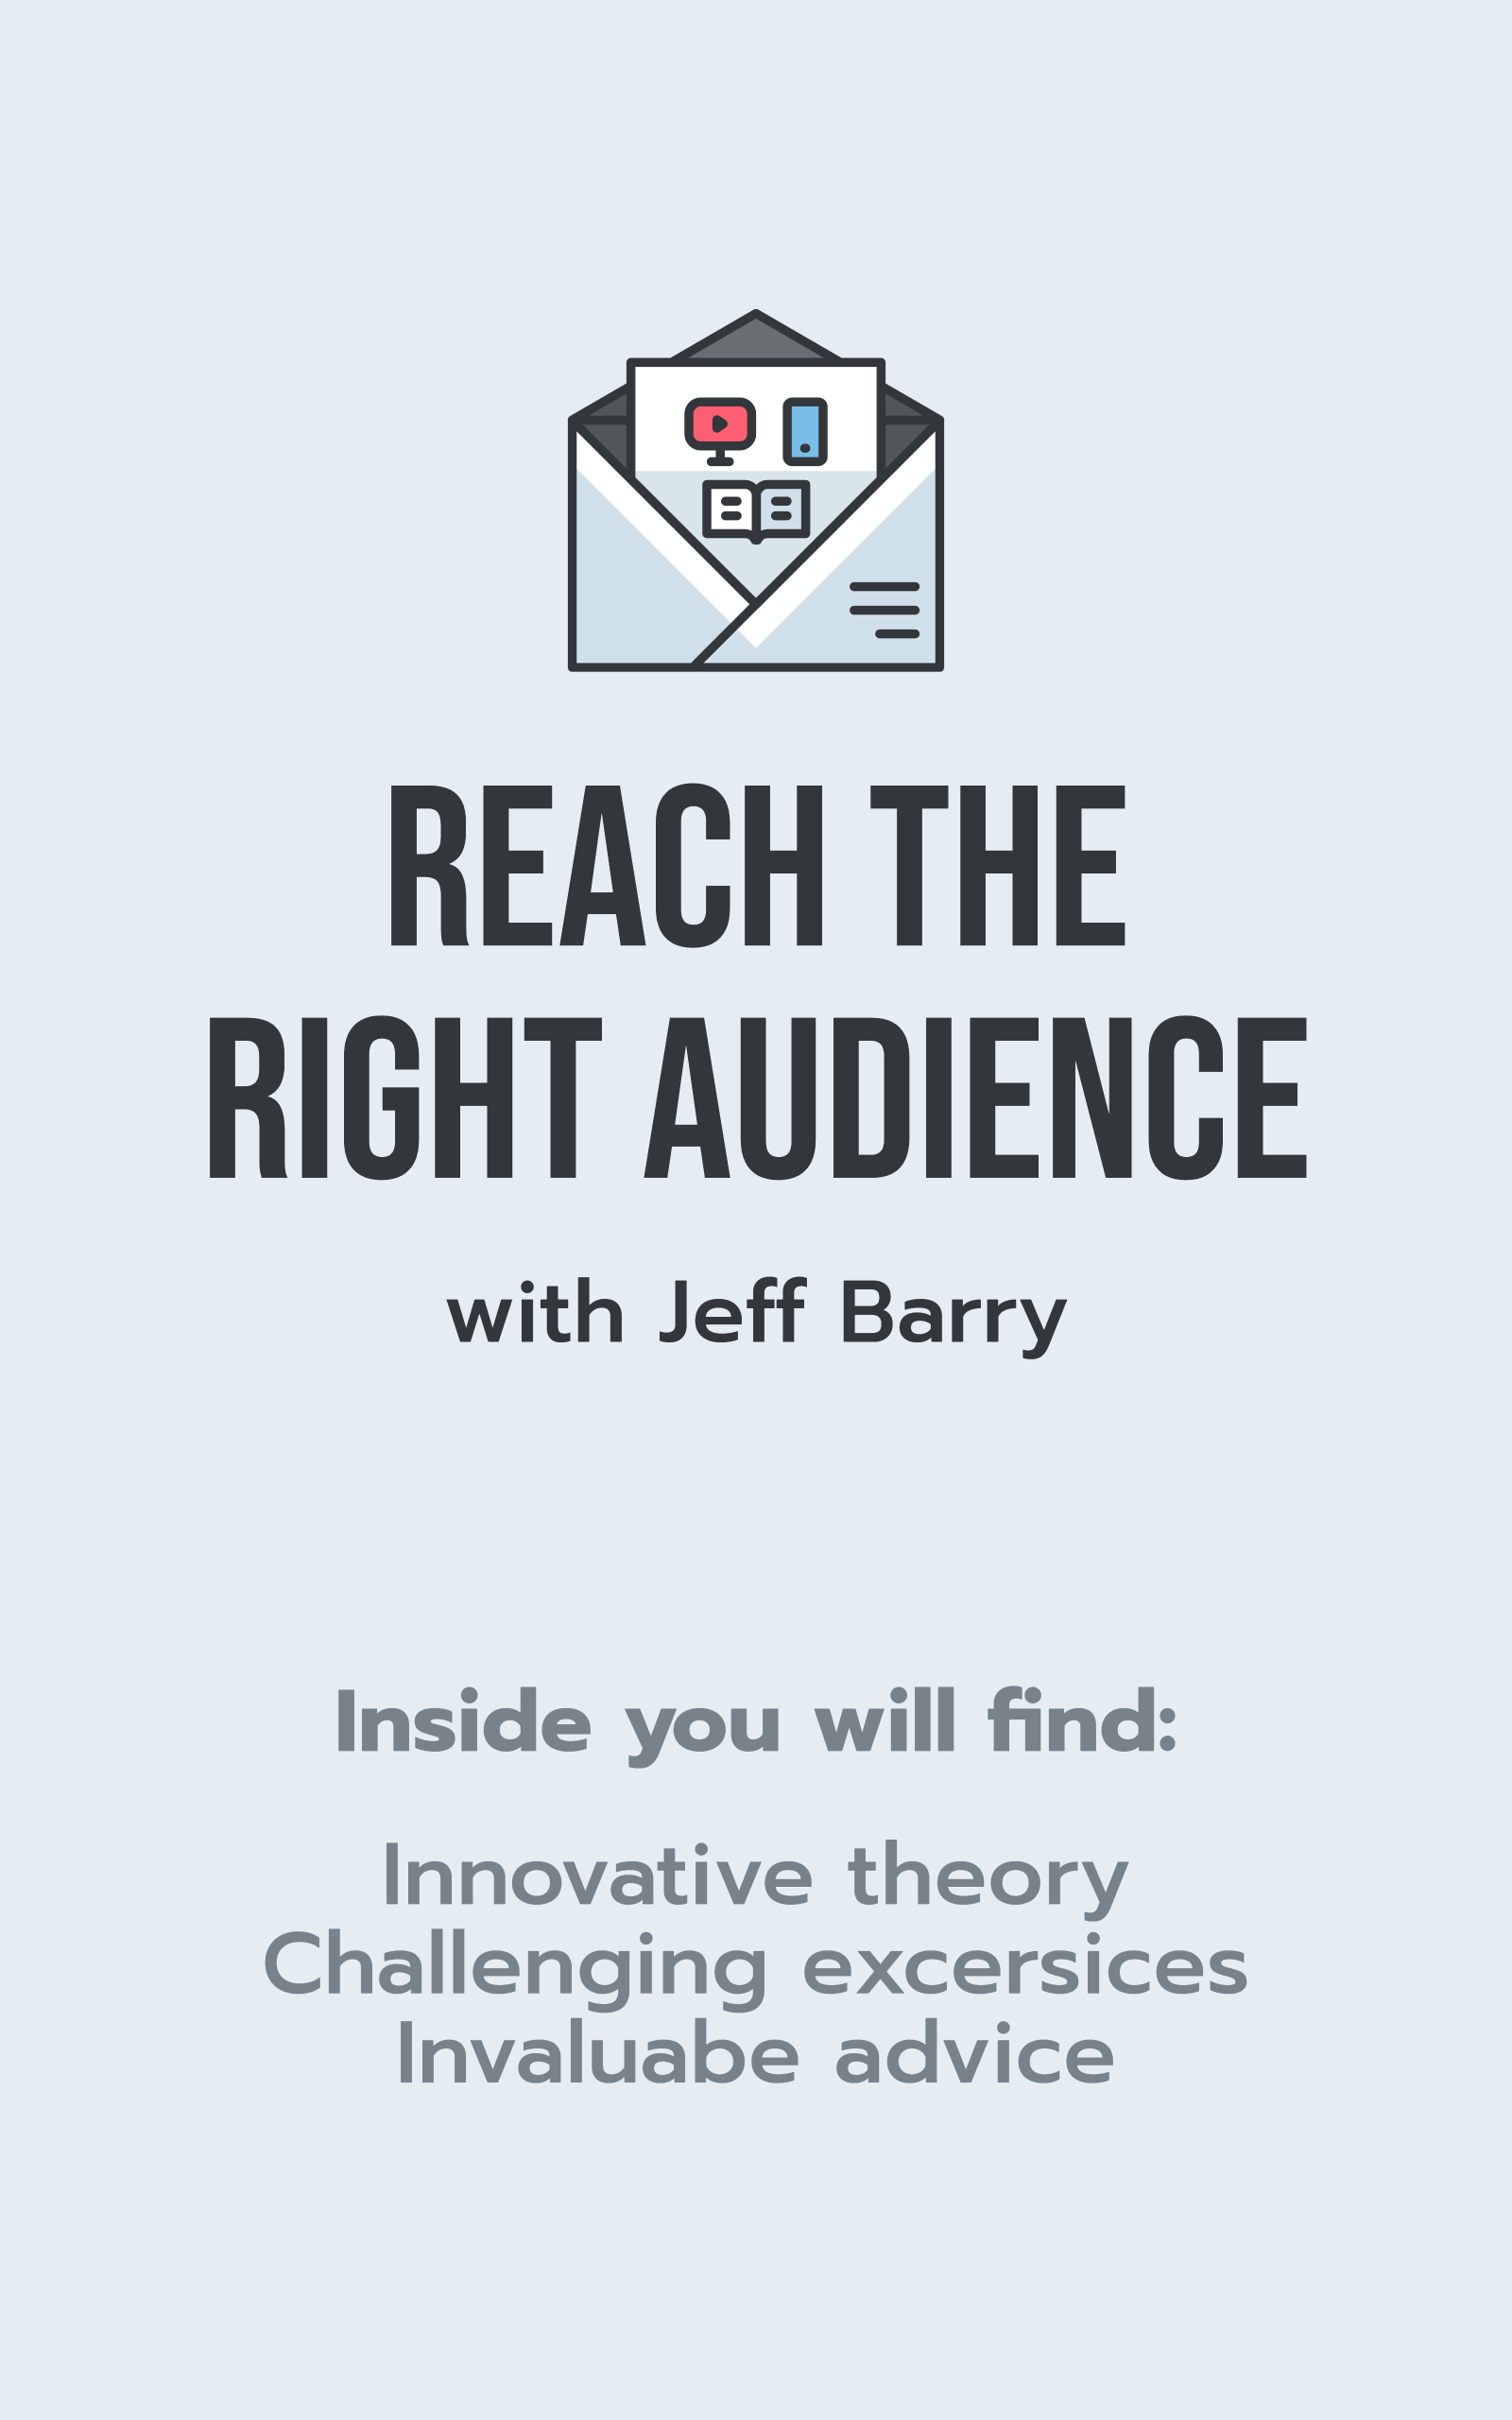 Reach the right audience with Jeff Barry - Ebook Ad